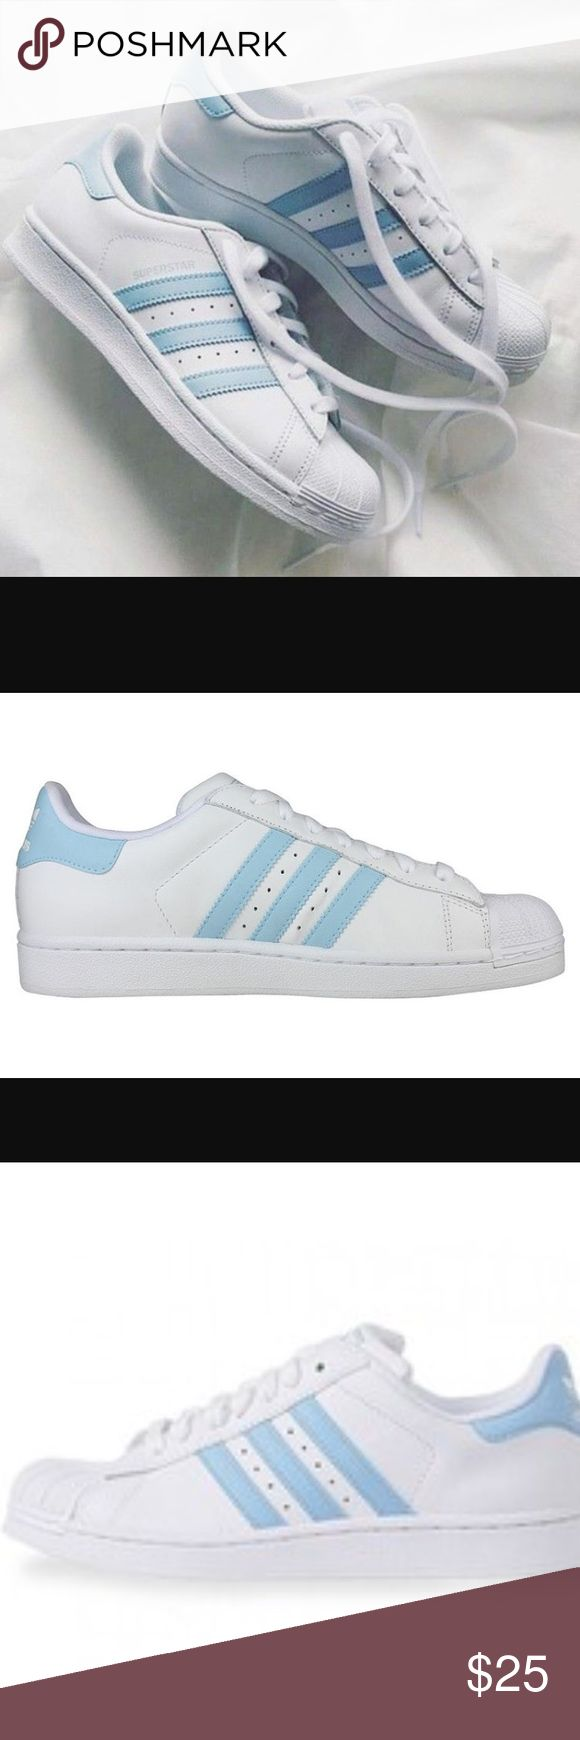 ISO vintage adidas superstars I am ISO-Do Not Attempt To Buy! These are very hard to find and I am REALLY in love with them. If anyone has these in good/like new/new condition comment down below please!! These are adidas superstars and they are white with a sky blue trim in size either 9.5 or 10 women's. Thank you! Adidas Shoes Sneakers